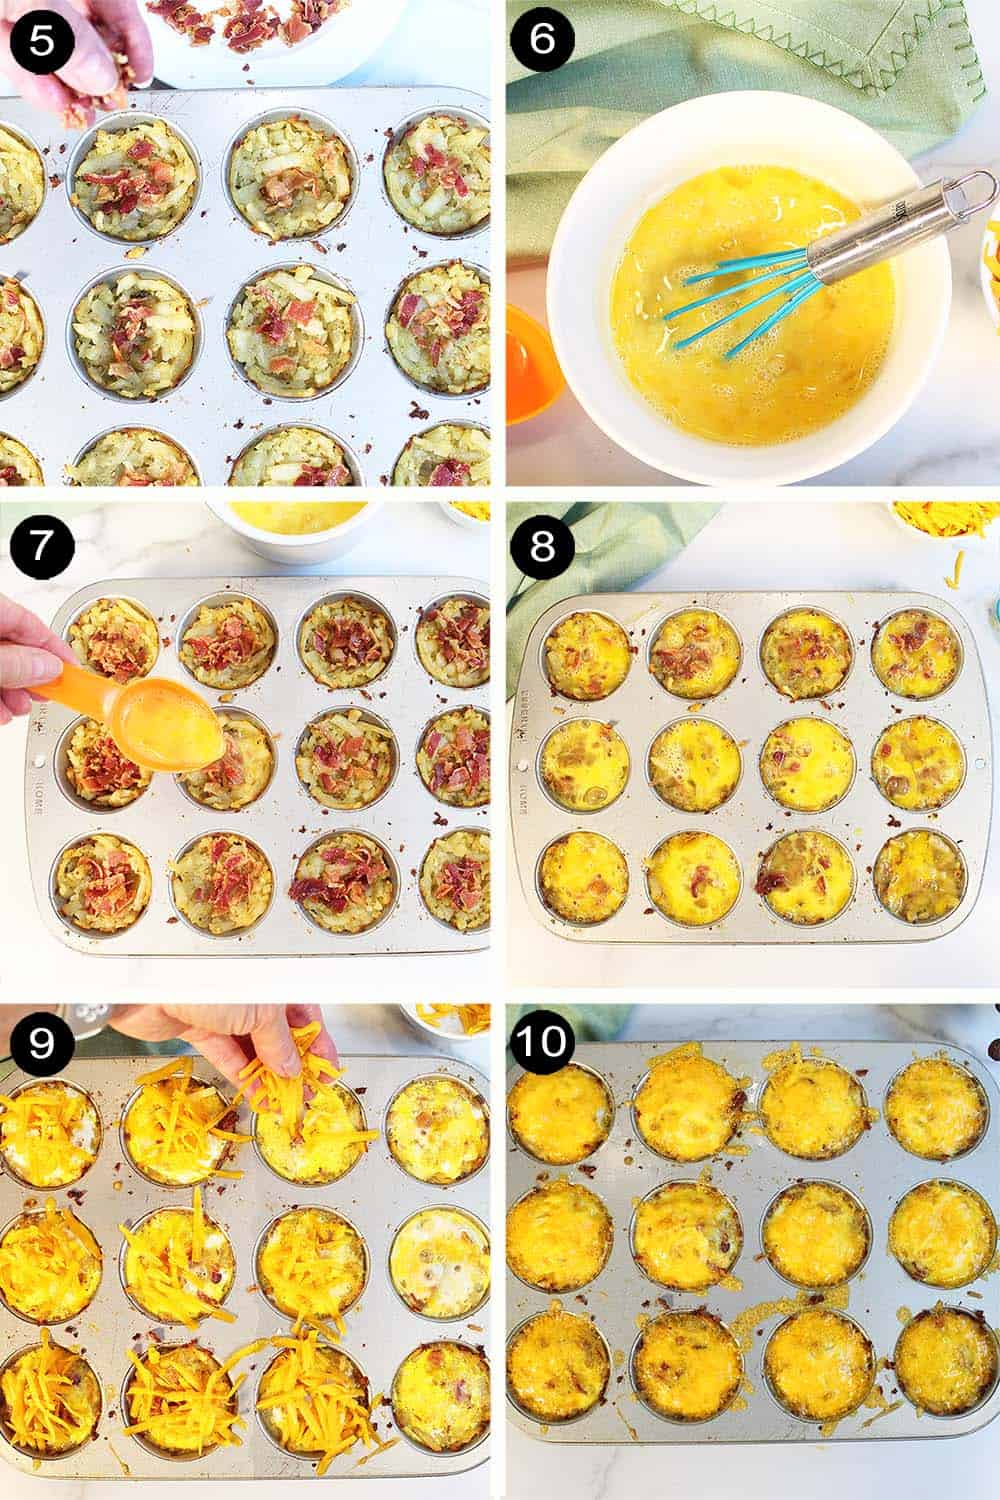 Steps 5-10 assembling and baking egg muffins.